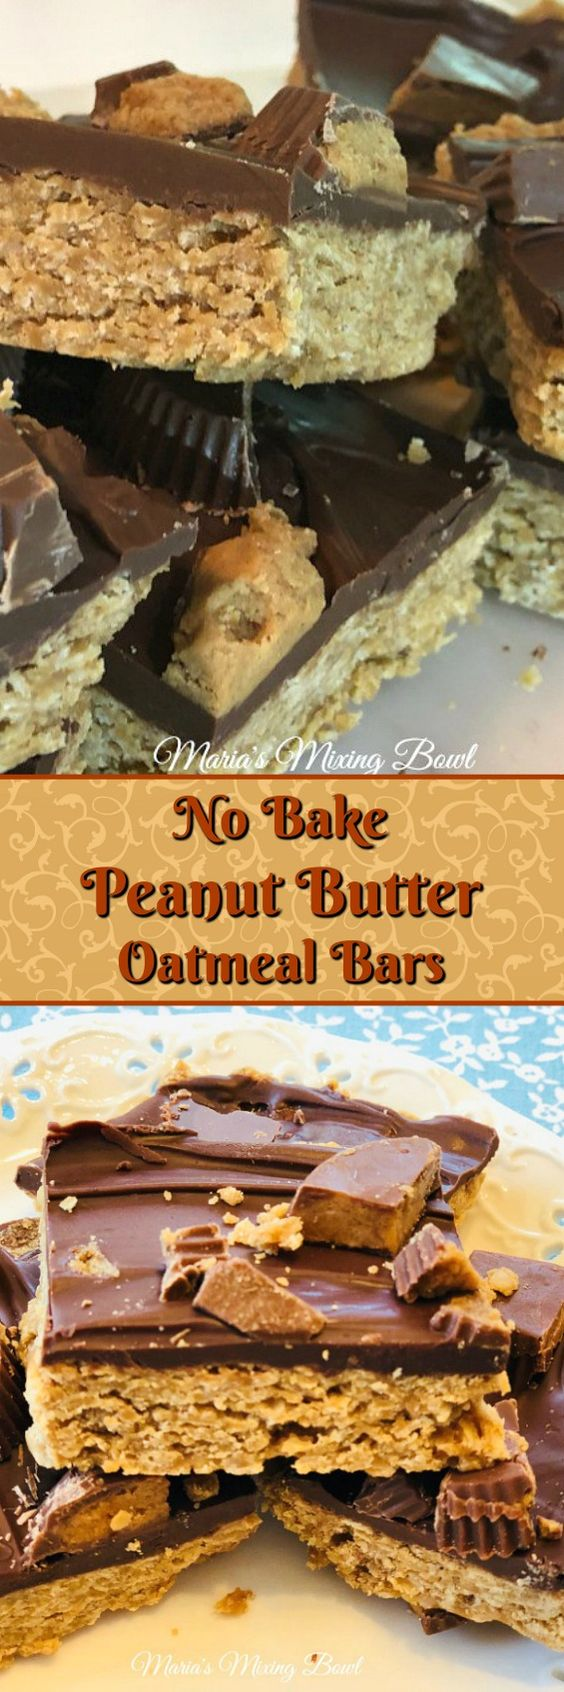 No Bake Peanut Butter Oatmeal Bars -   We can't resist these No Bake Peanut Butter Oatmeal Bars with chocolate frosting and pieces of Reese's cups on top! They are so easy to make and a family favorite.